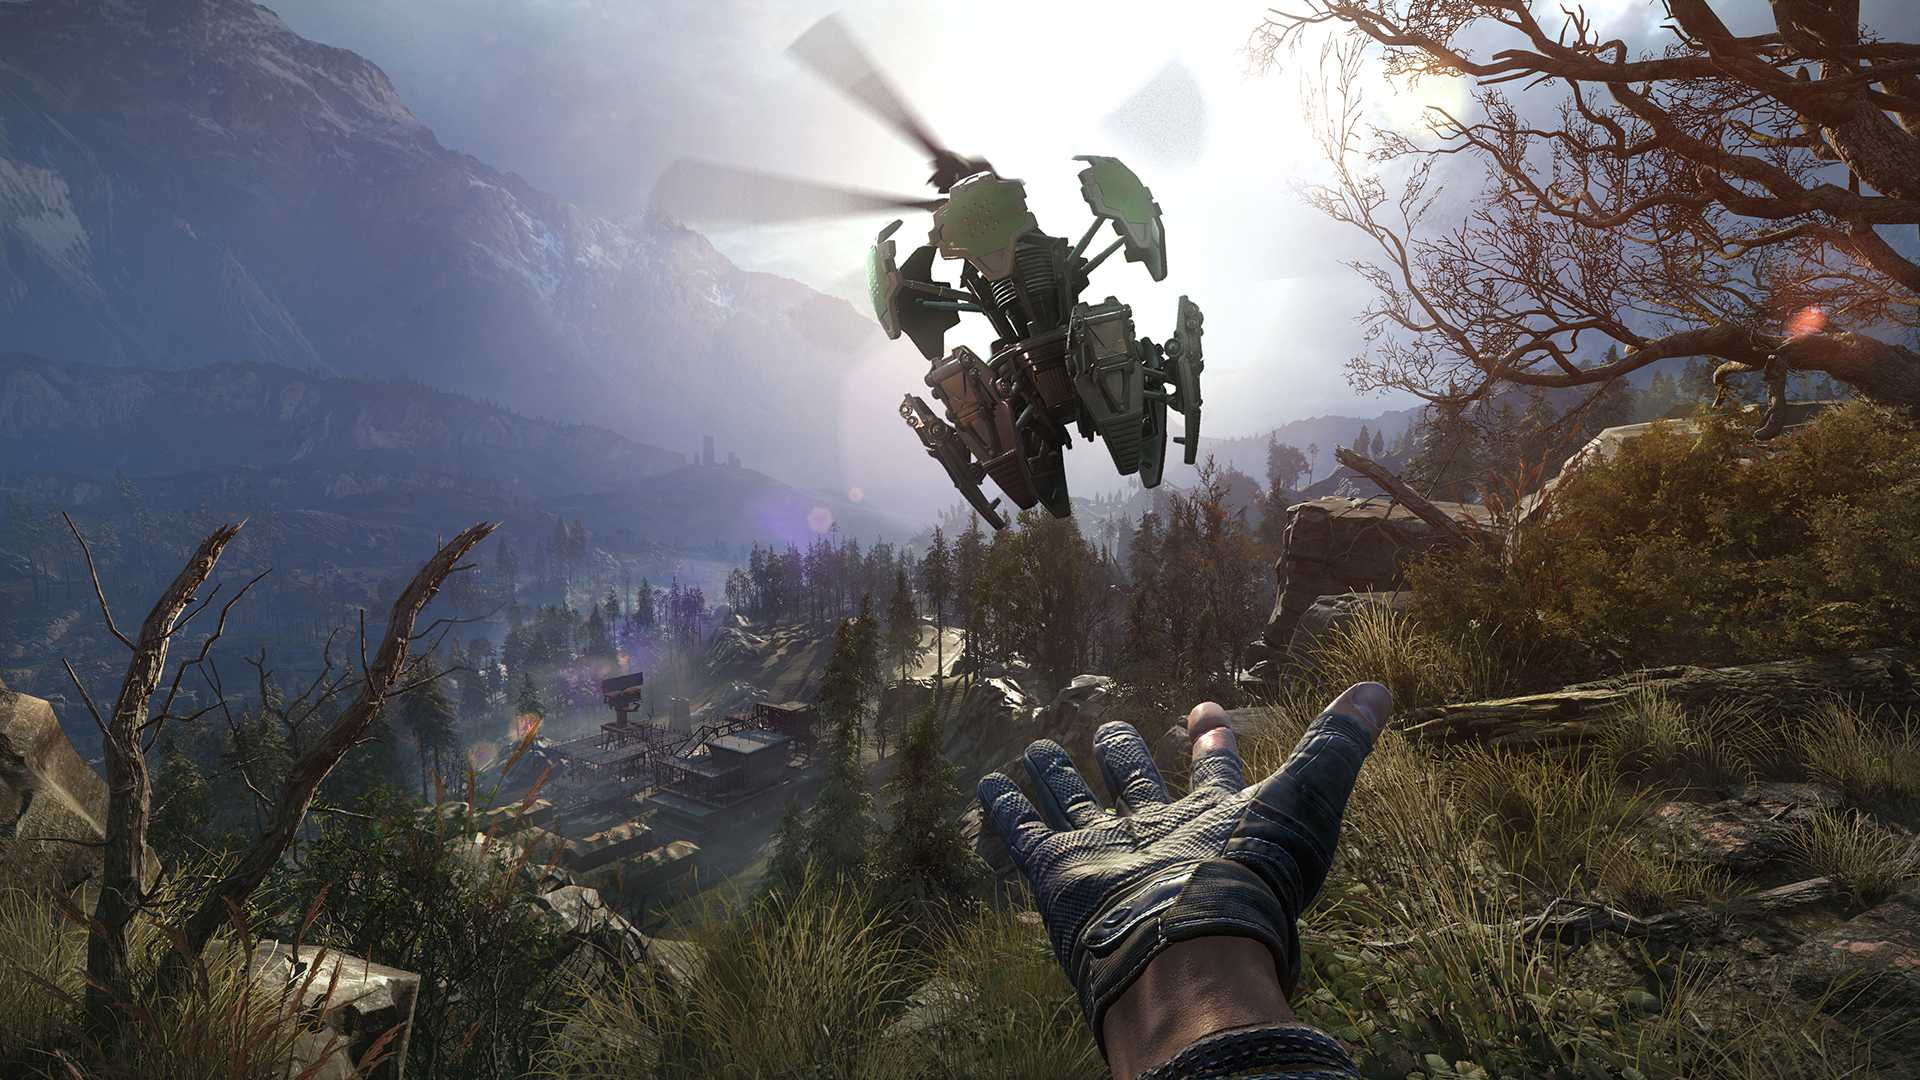 Ghost Warrior's beta is plagued by game-breaking problems